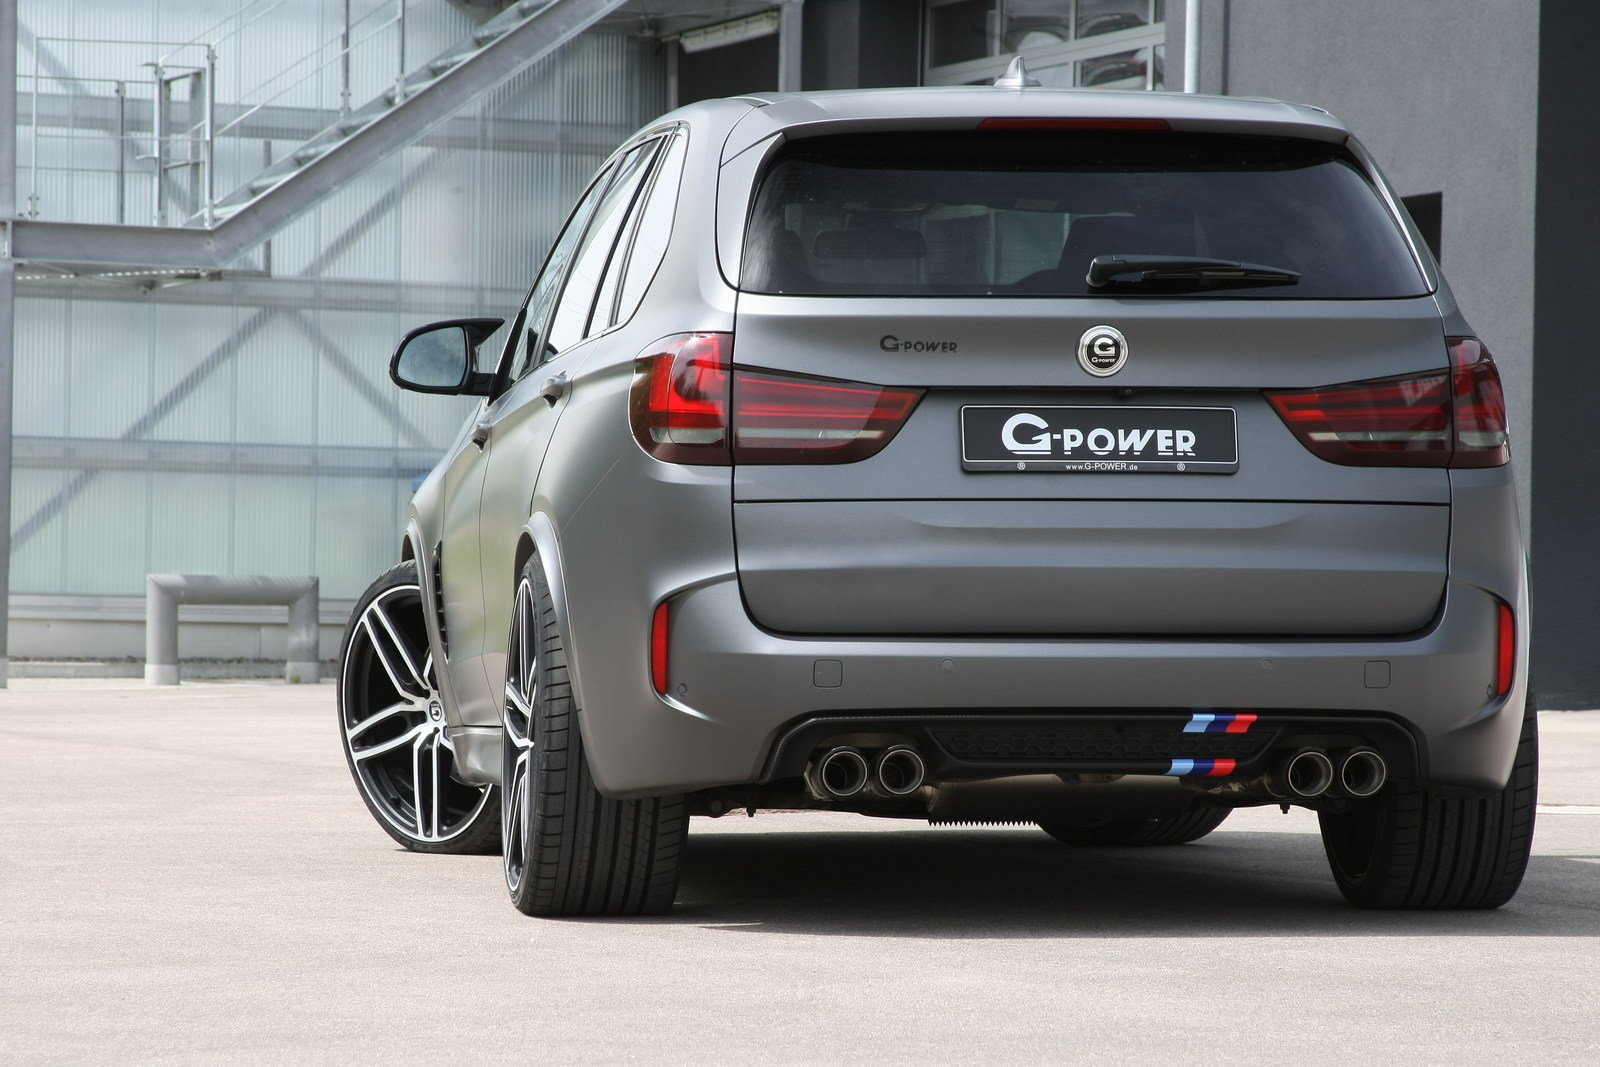 2016 Bmw X5 M By G Power Picture 680640 Car Review